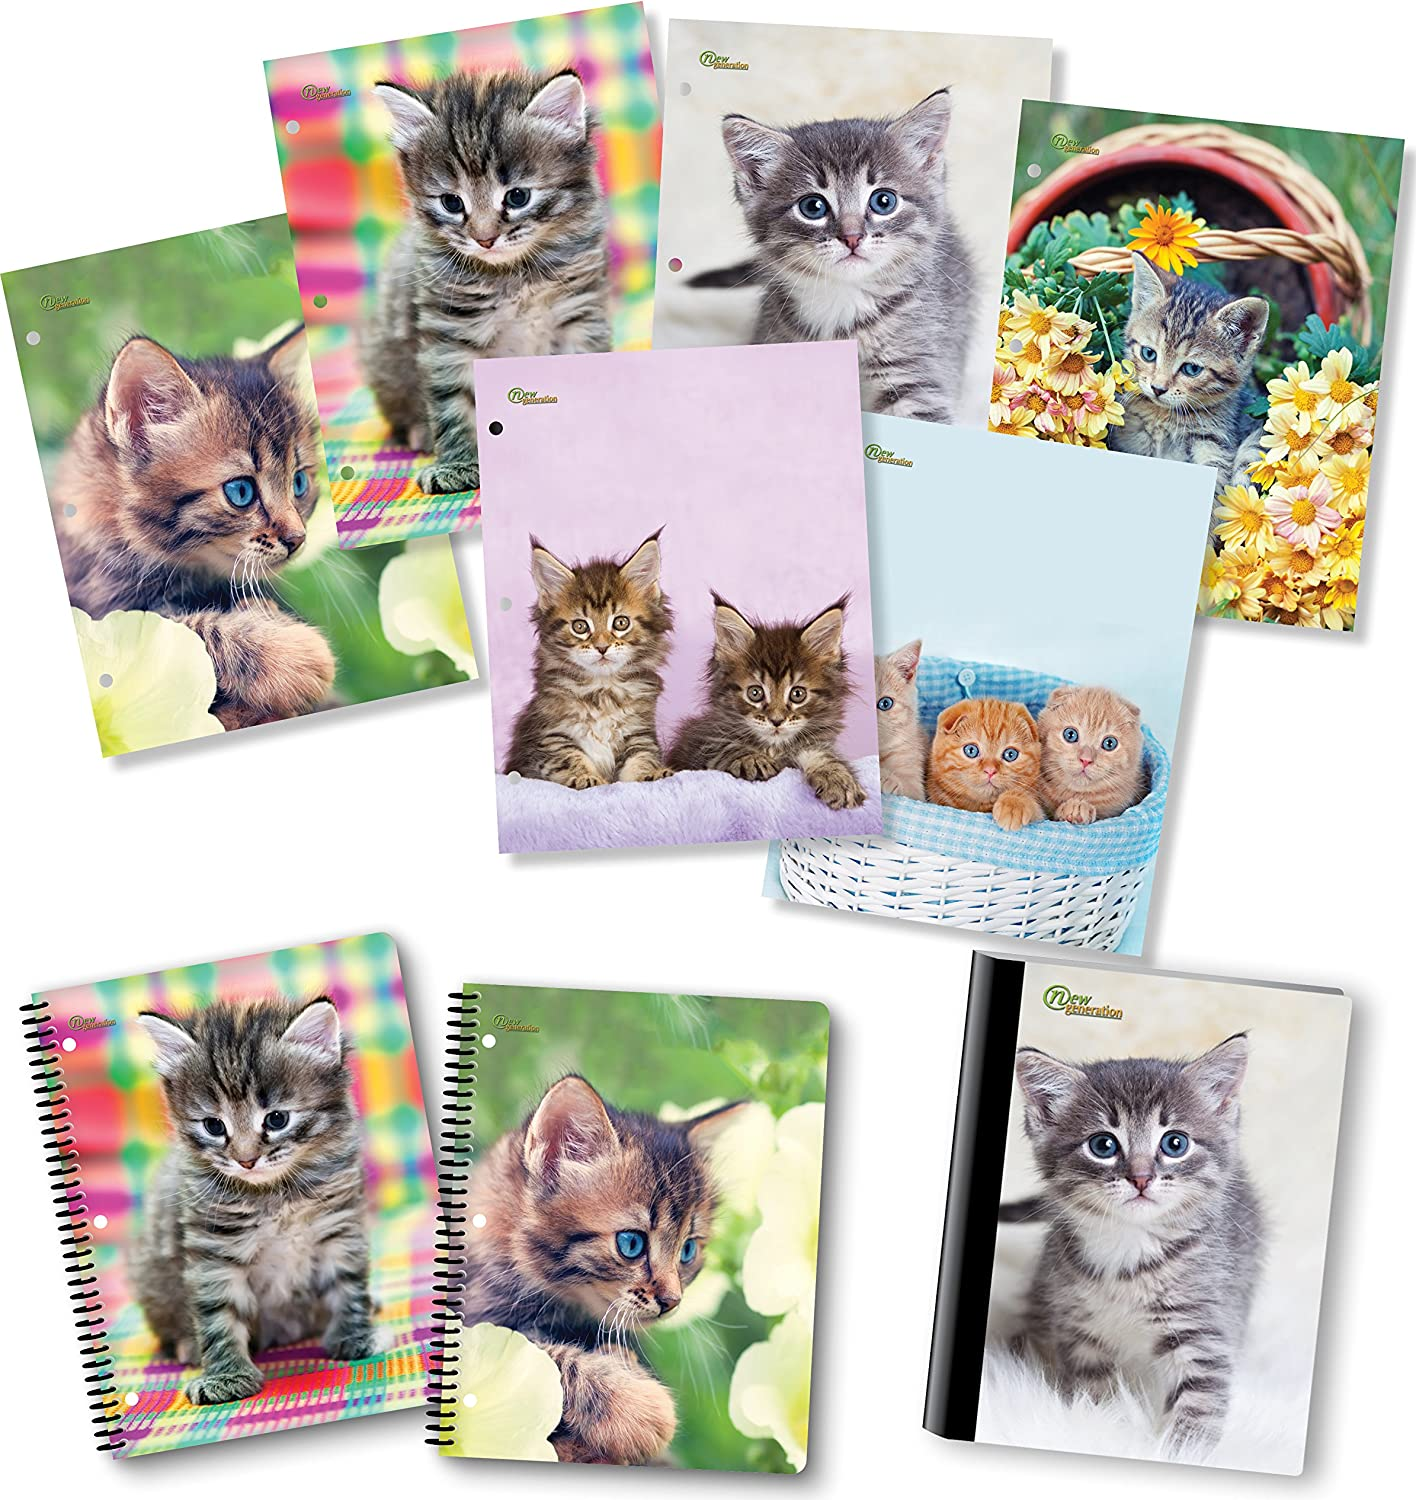 NEW GENERATION – Kittens 2 Pocket Folders, Heavy Duty Fashion Durable 6 Assorted Cat Designs School Folders,Set Included with1 Composition Notebook, 2 Spiral Notebooks - 9 Pack